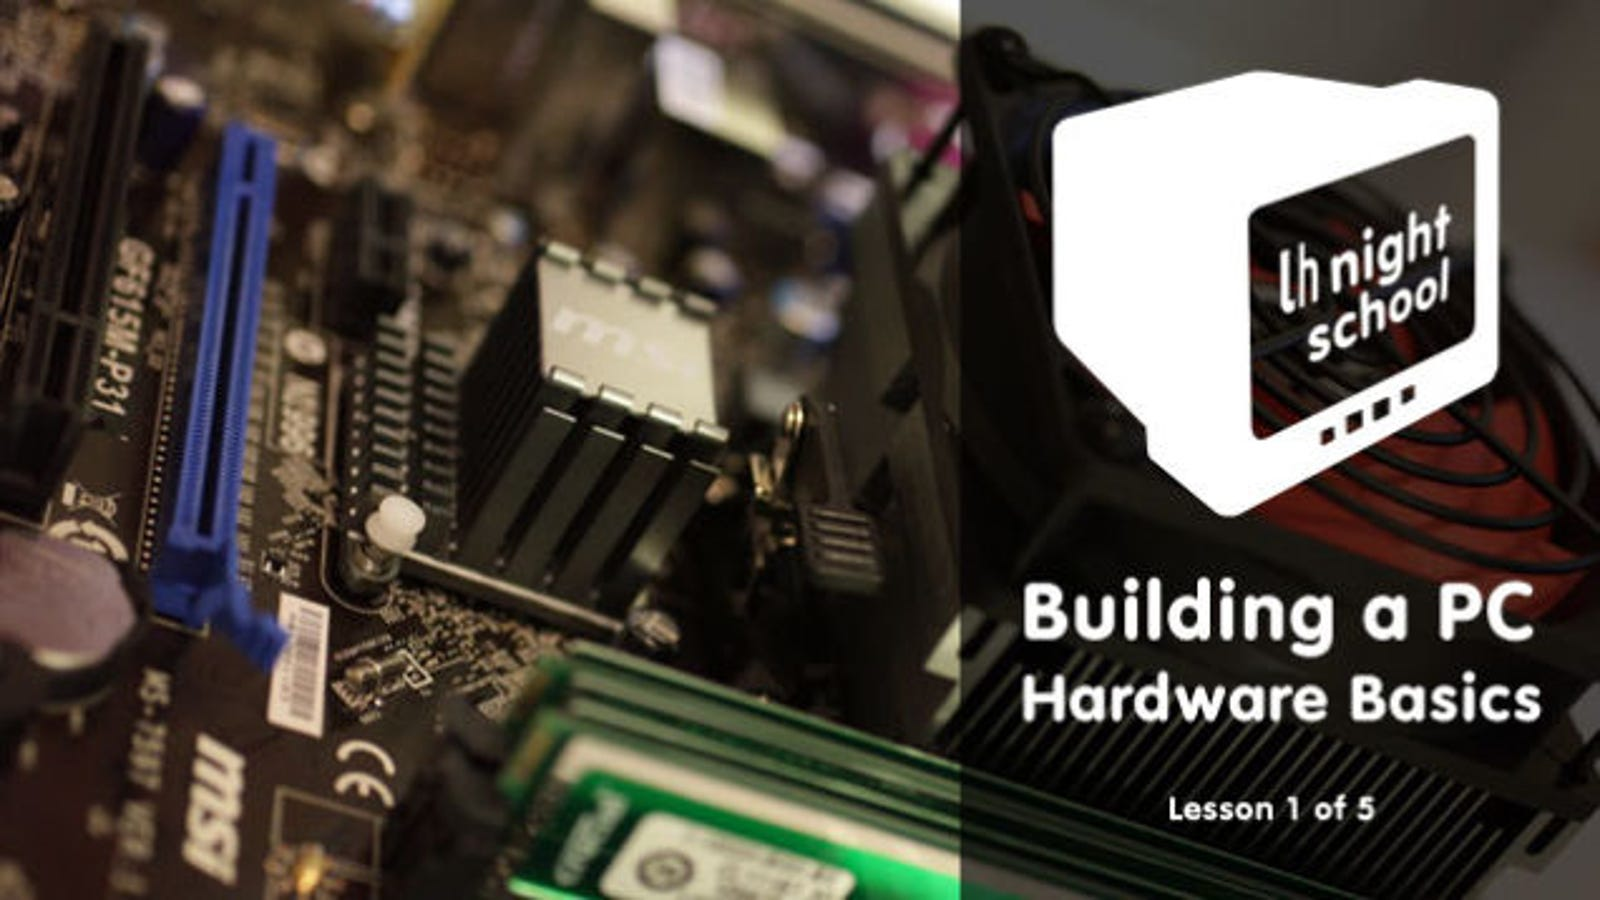 How To Build A Computer Lesson 1 Hardware Basics